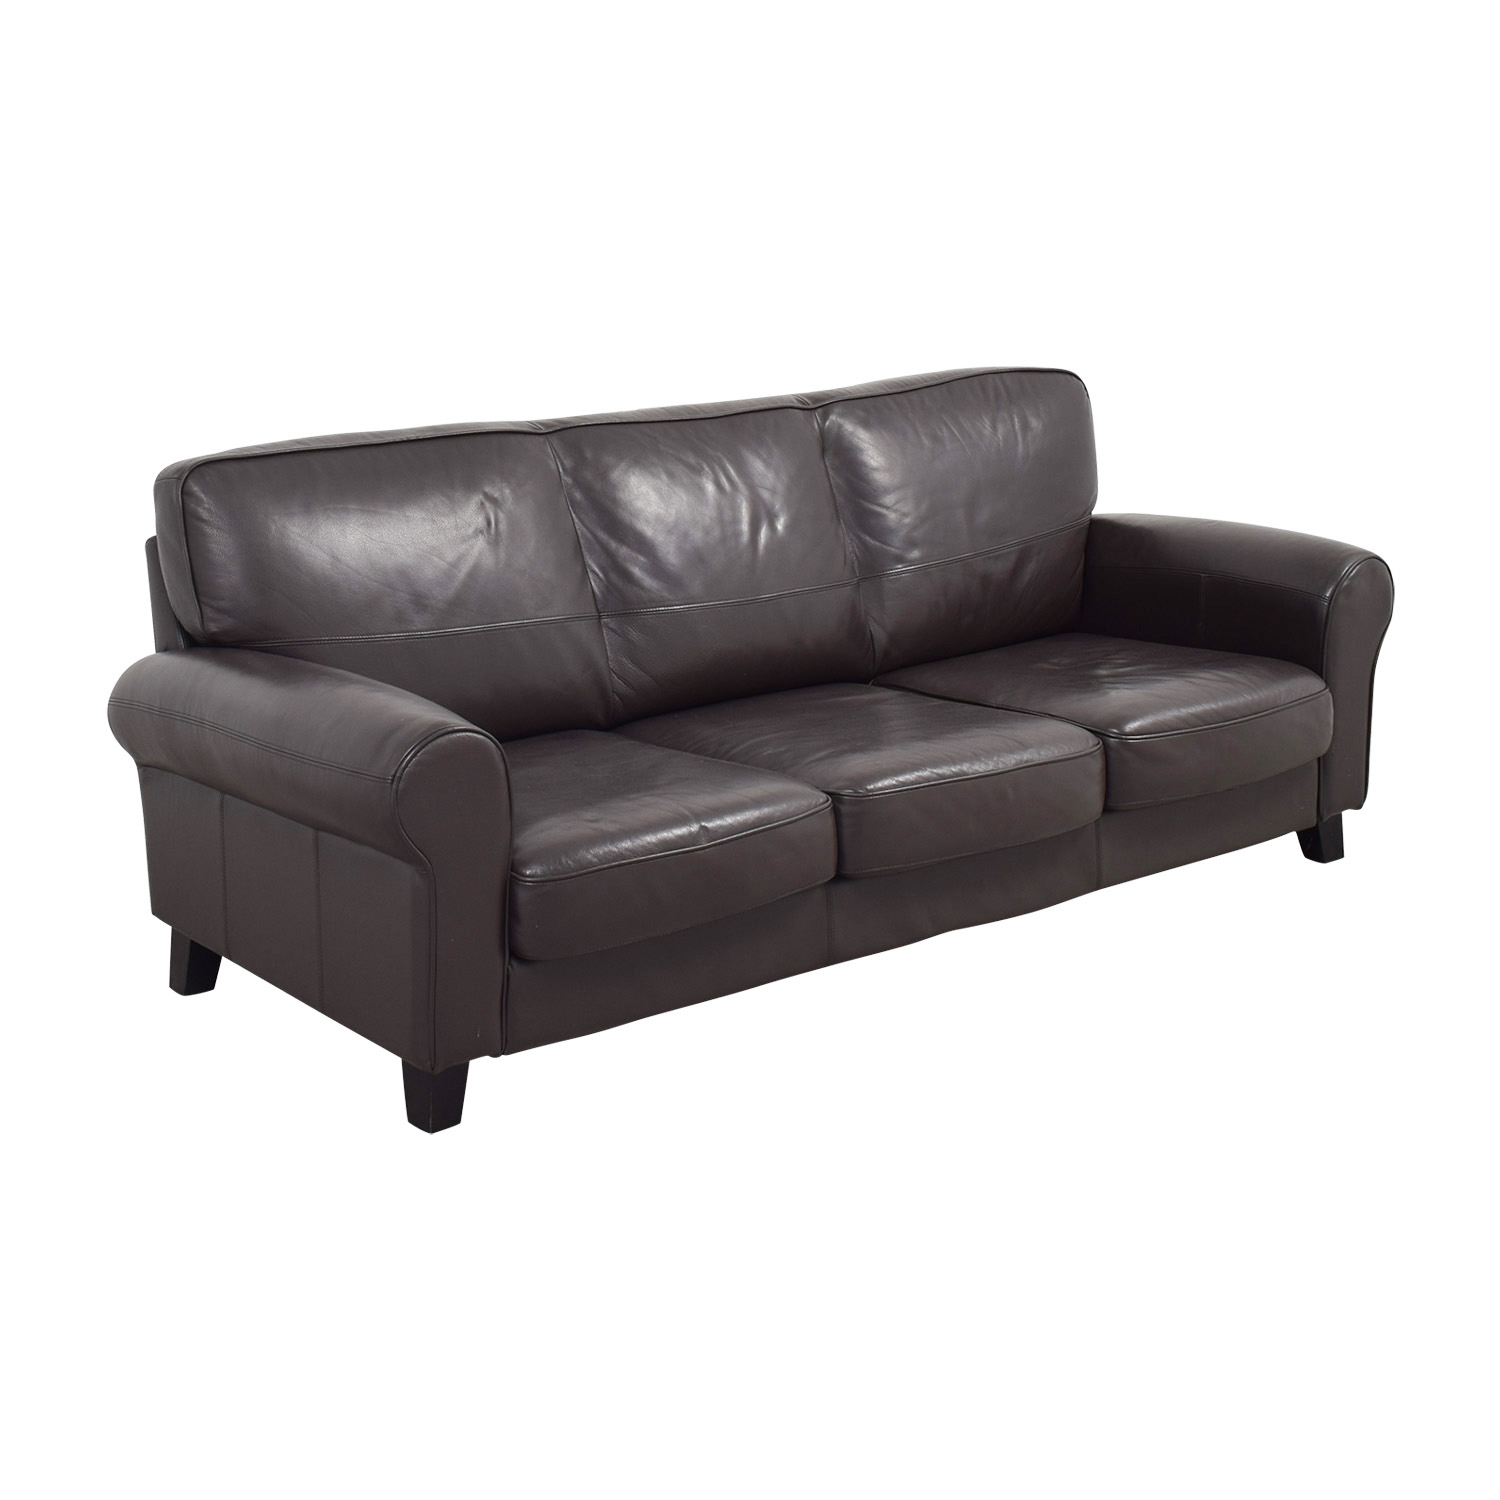 Ledersofa Ikea Säter Ikea Brown Leather Sofa Home Decor 88